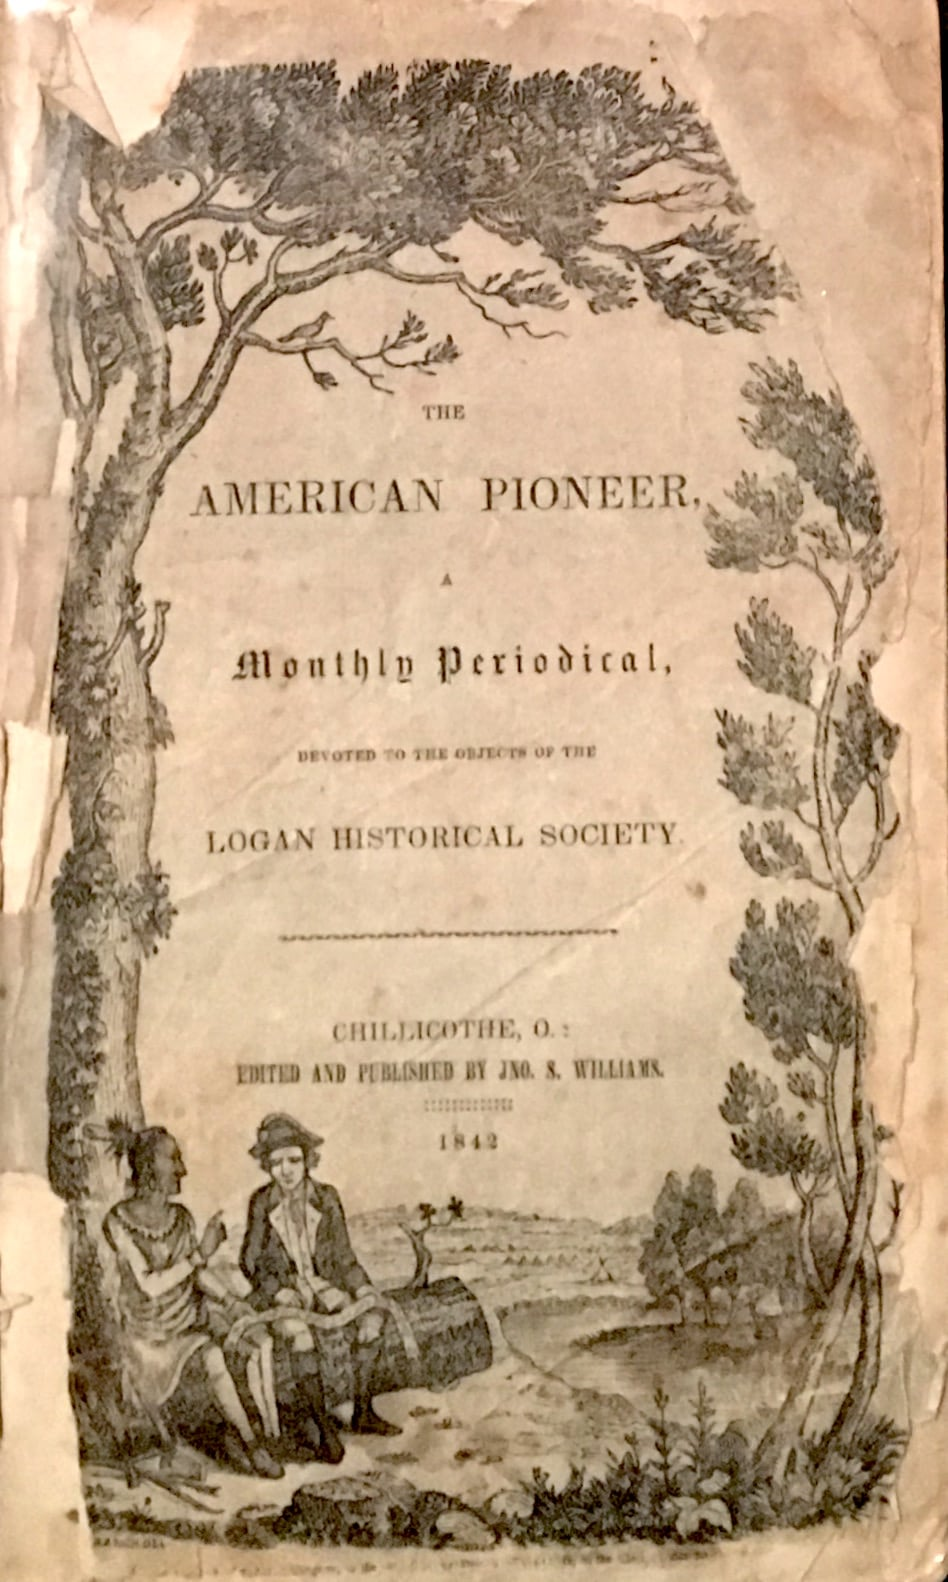 American Pioneer, A Monthly Periodical Devoted to the Objects of the Logan Historical Society